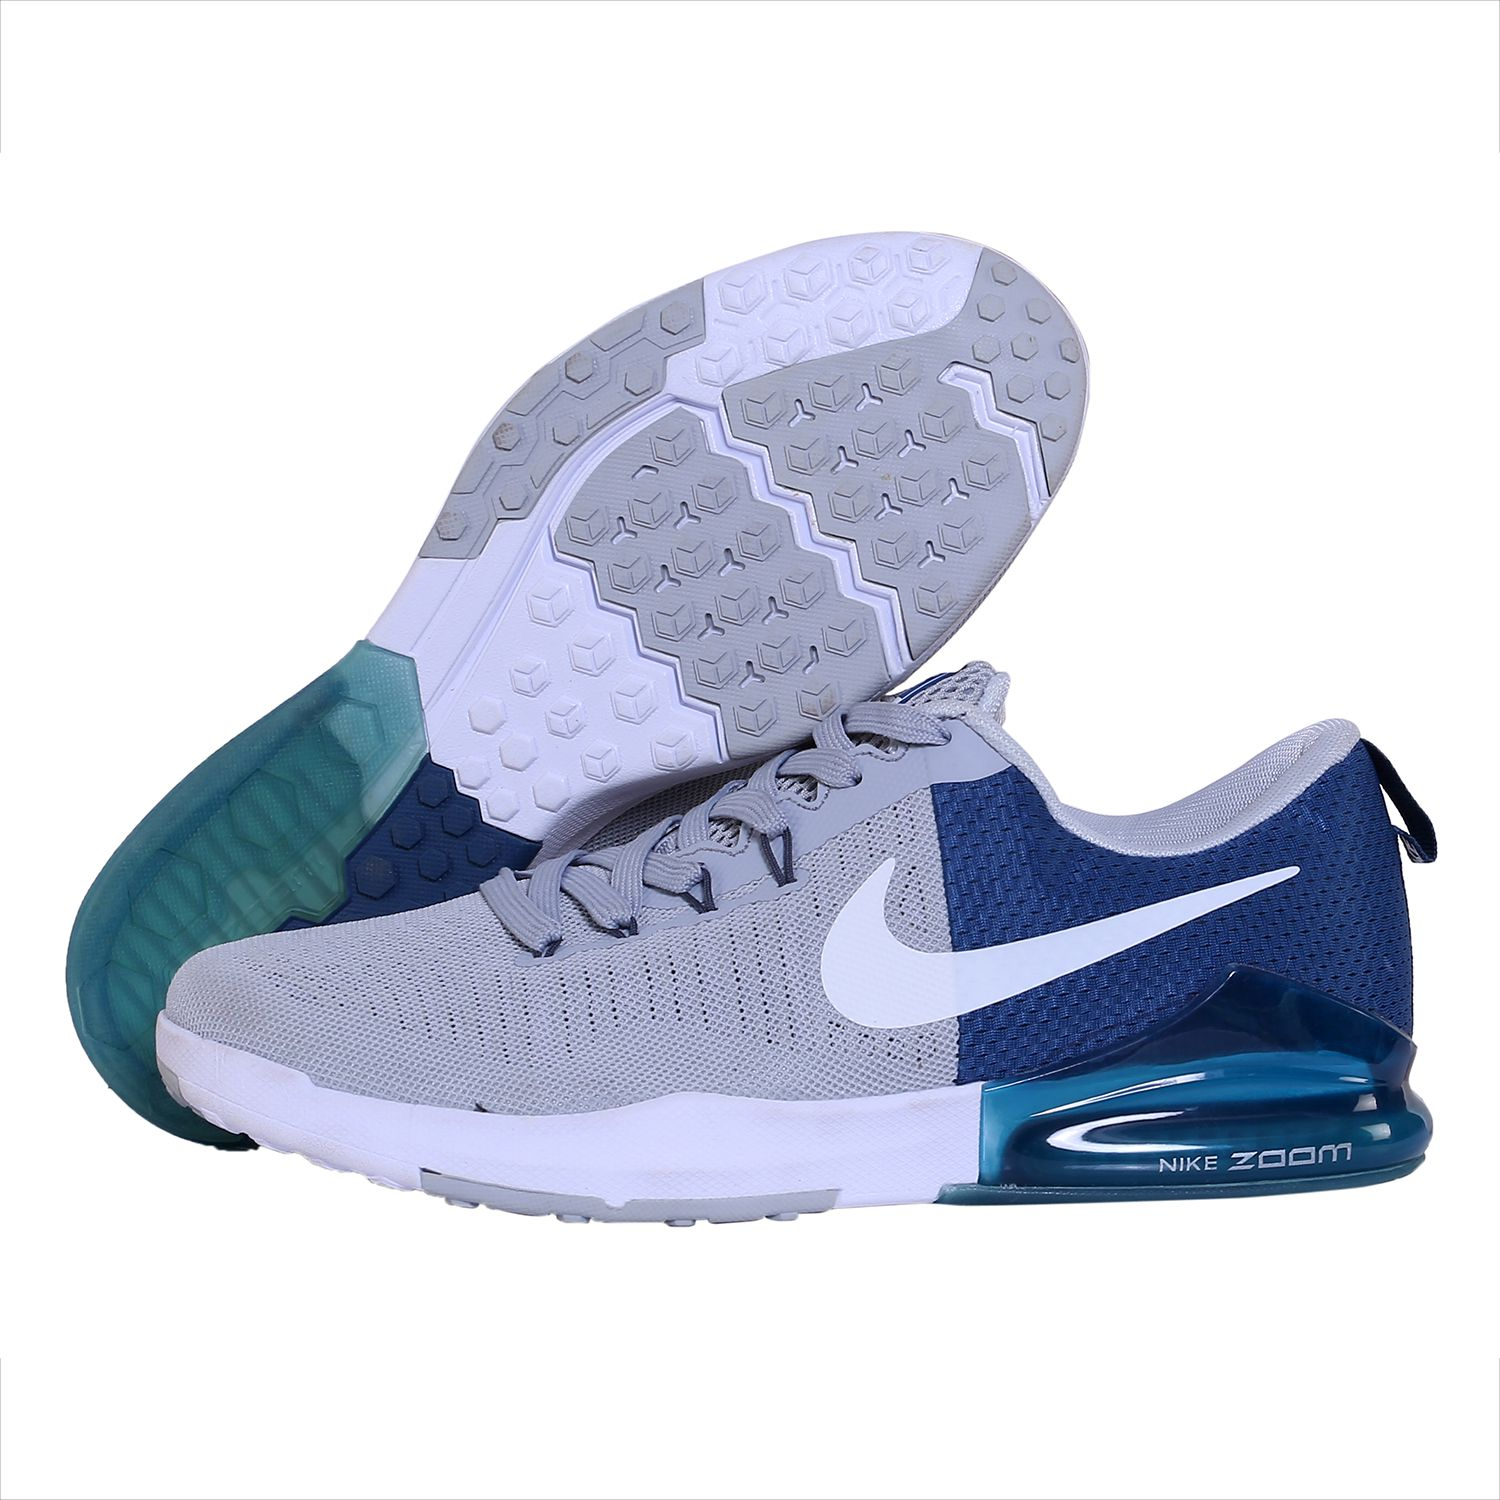 fc6b8a0d669e Nike ZOOM TRAIN ACTION Silver Running Shoes - Buy Nike ZOOM TRAIN ACTION  Silver Running Shoes Online at Best Prices in India on Snapdeal